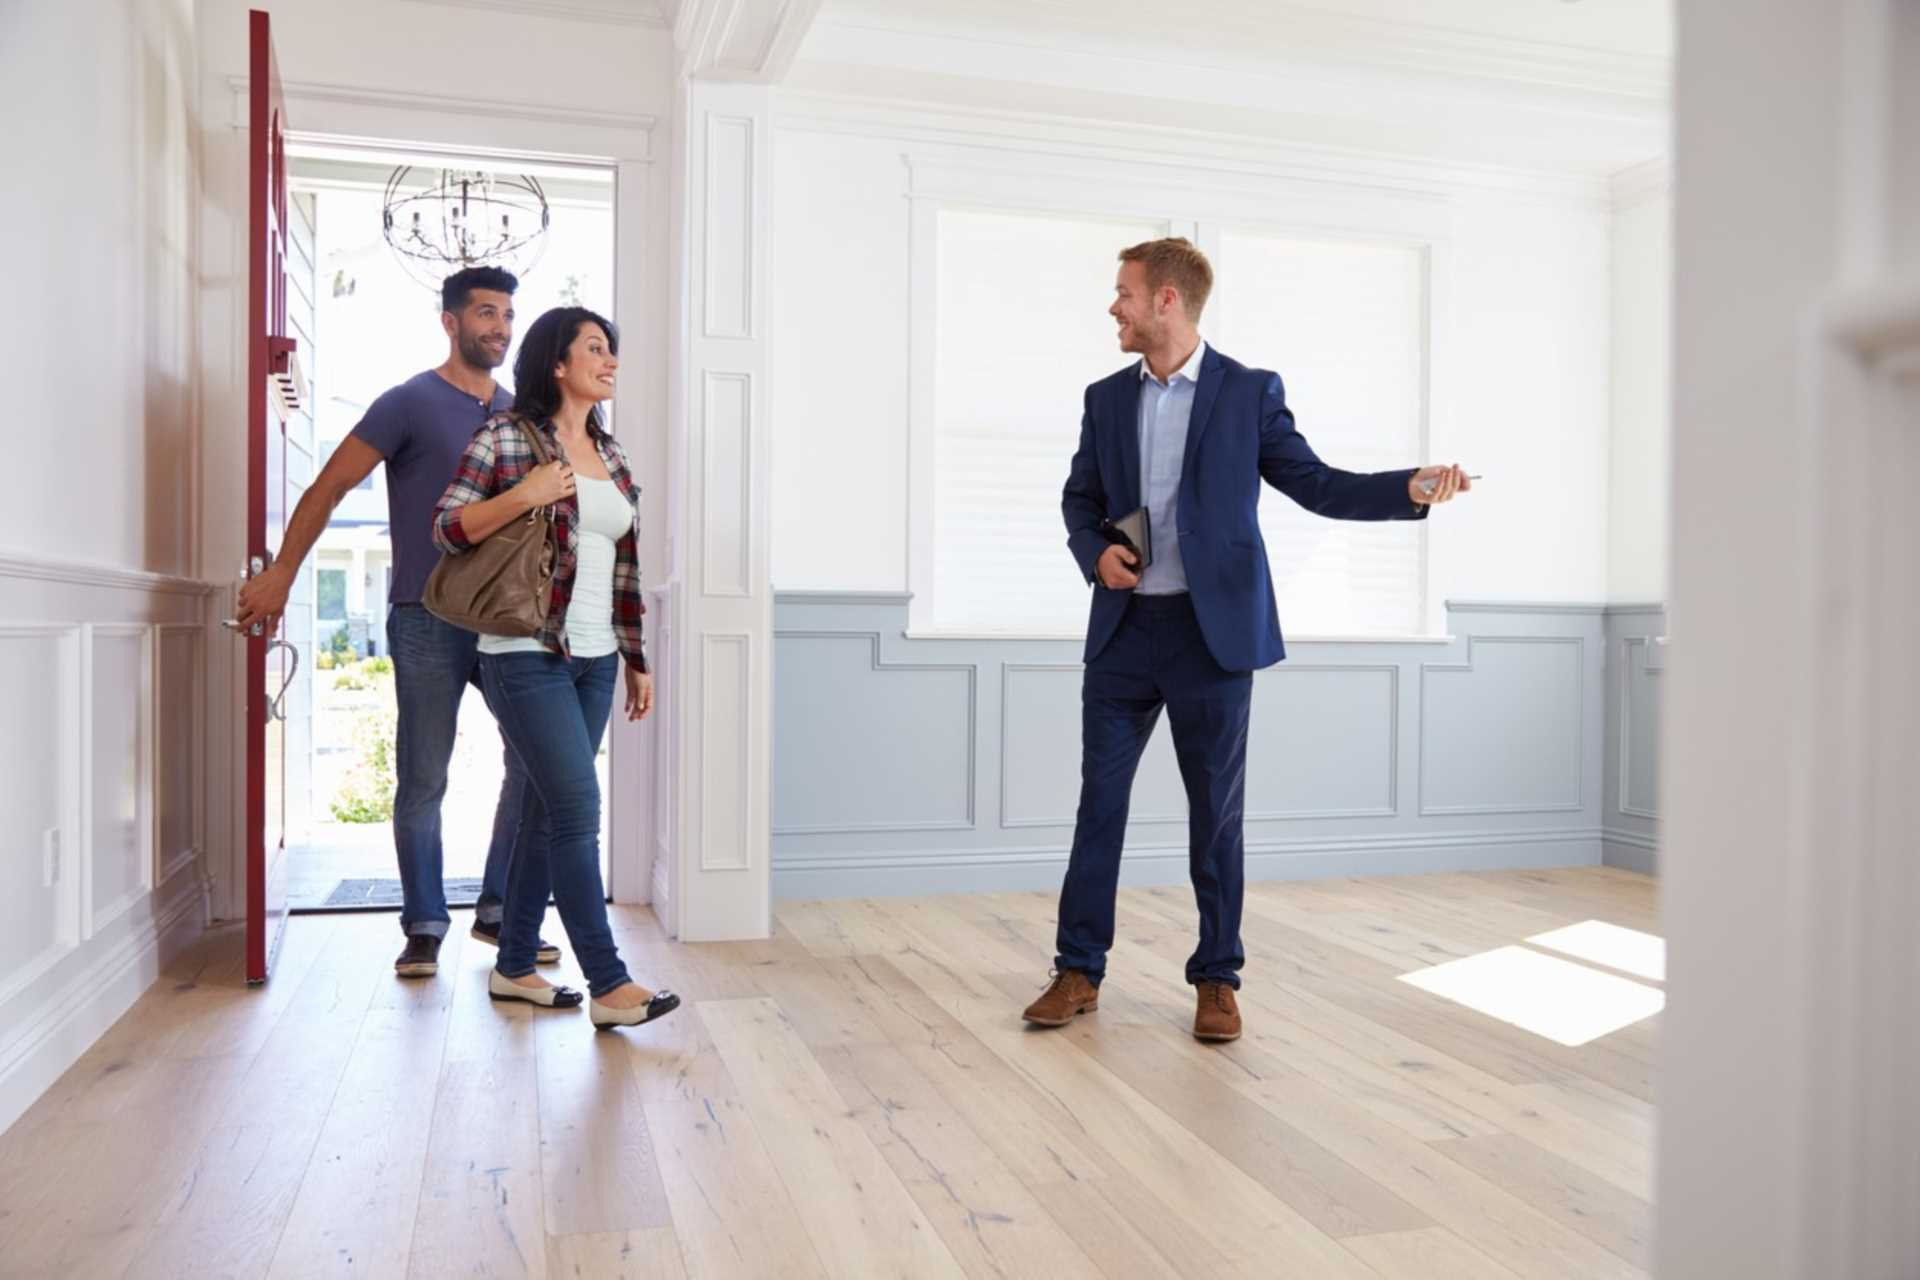 What to ask when viewing a house